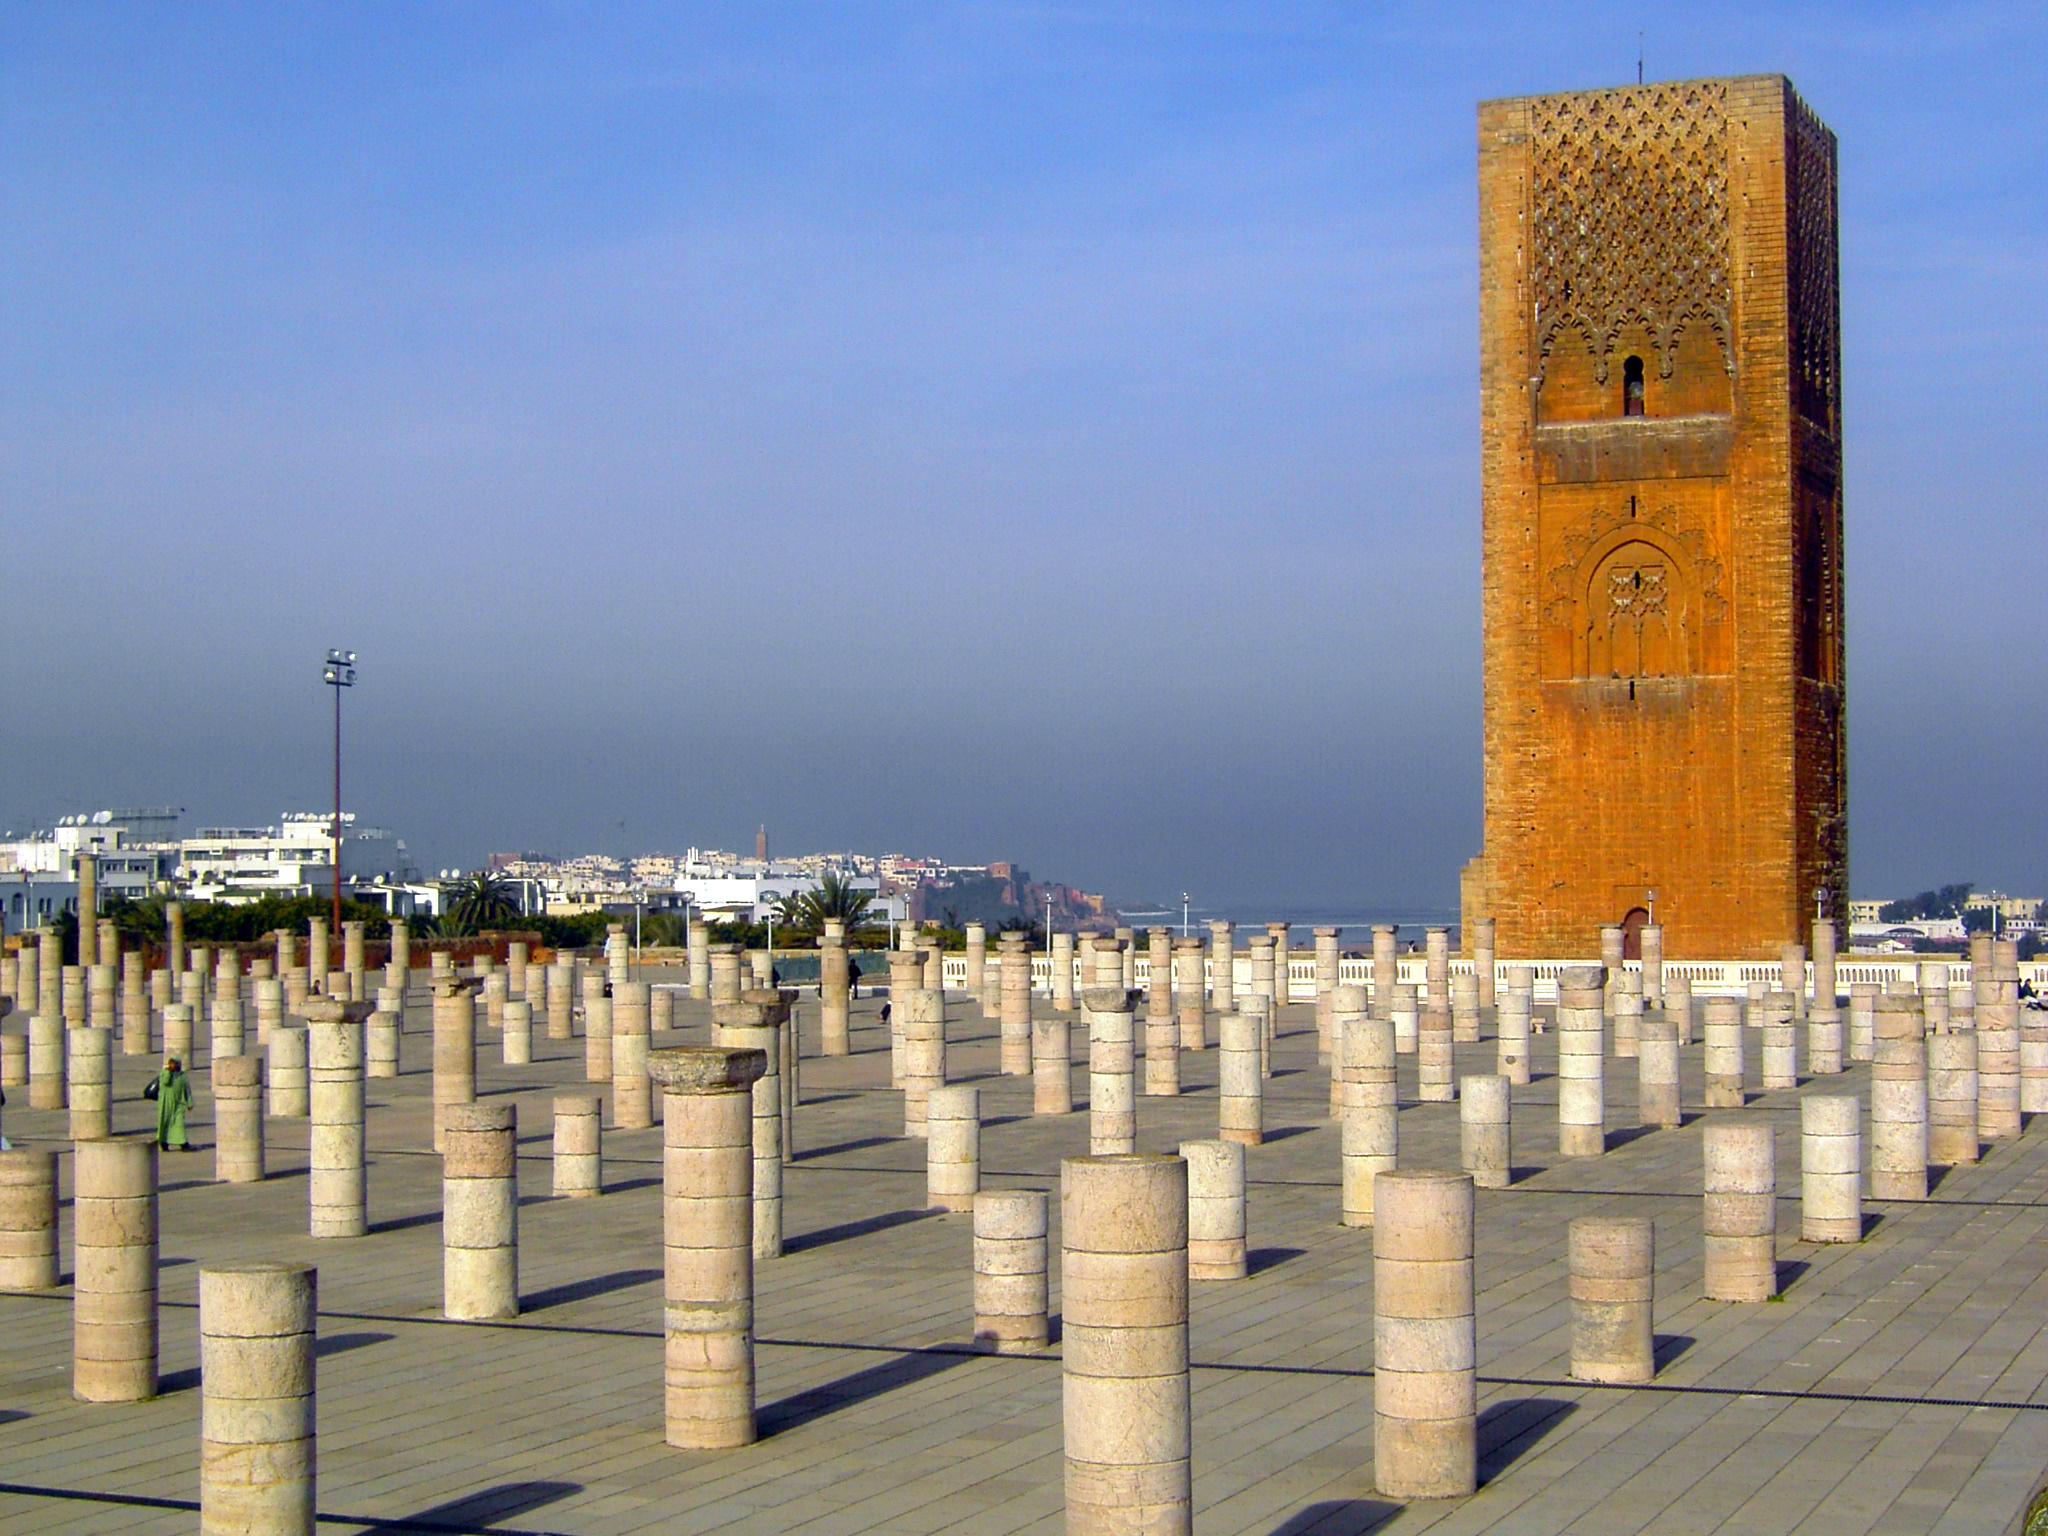 Hassan_Tower_and_columns_(Rabat,_Morocco)_(15126547404).jpg